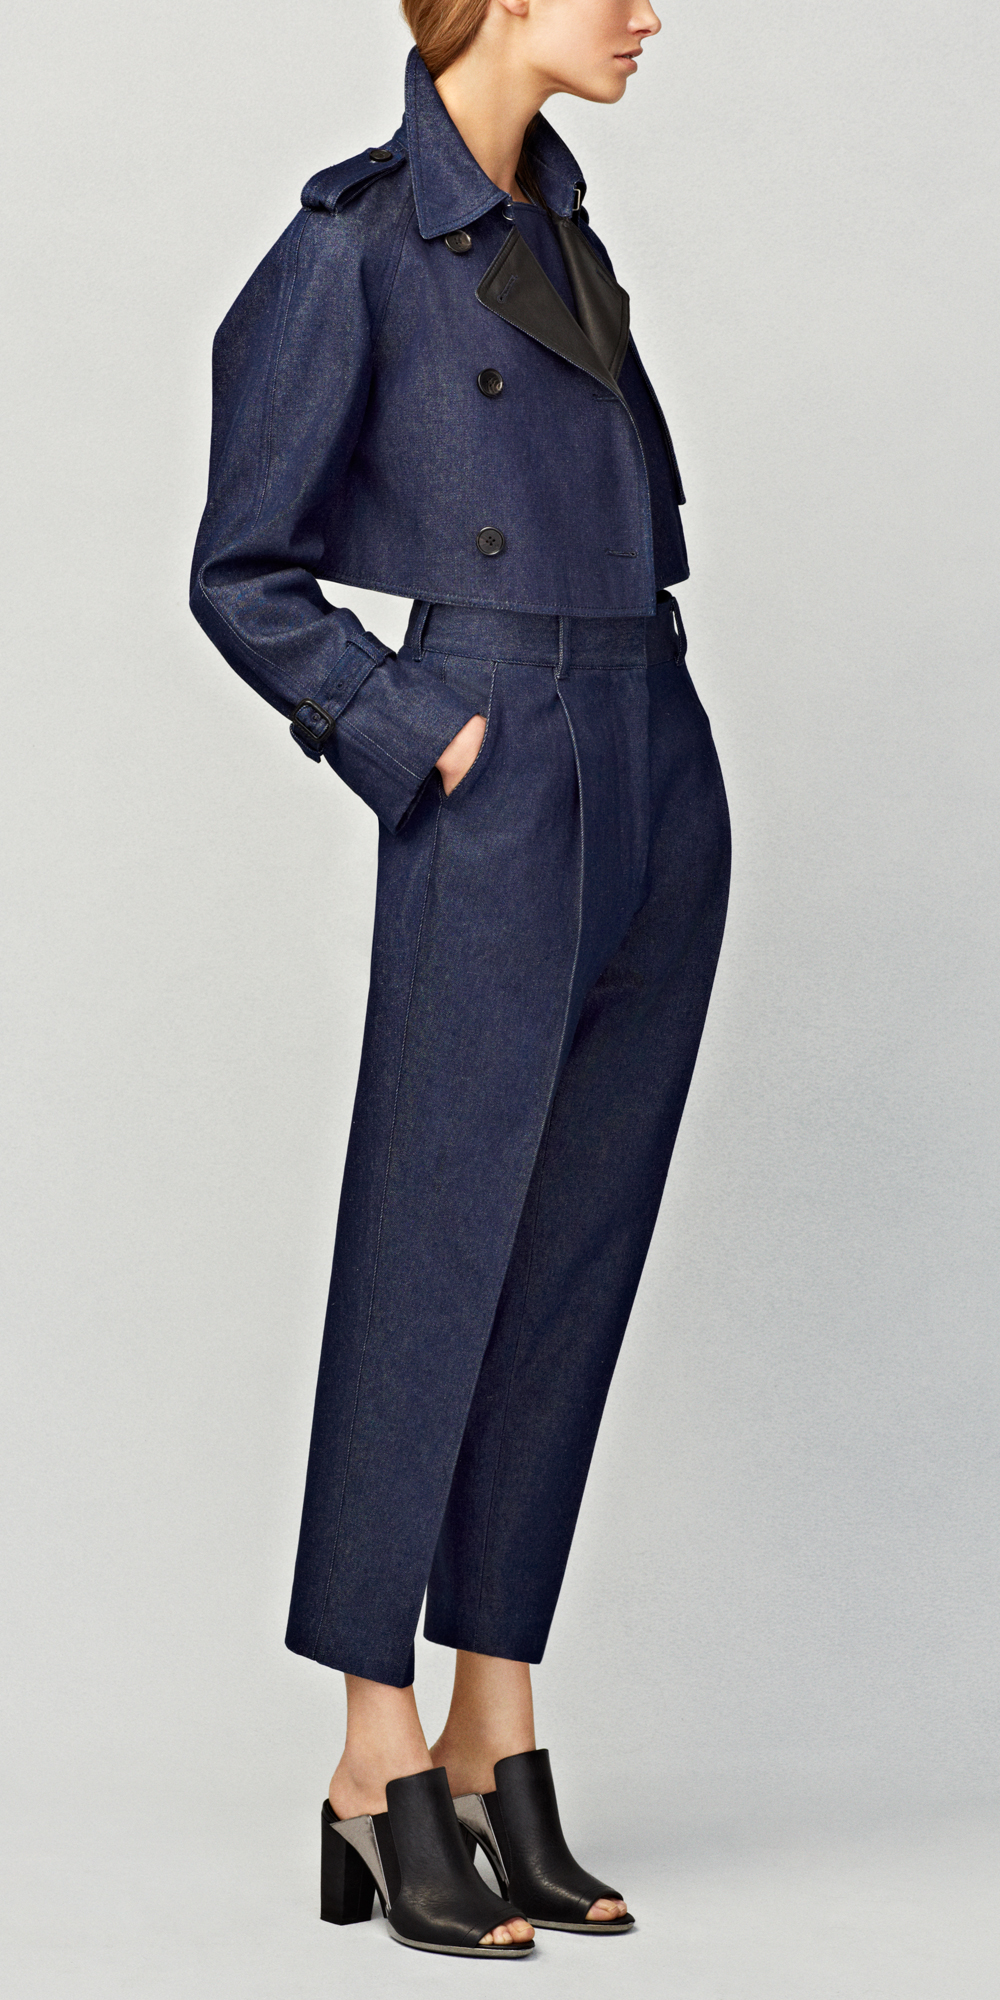 Phillip_Lim_denim_capsule_08.jpg